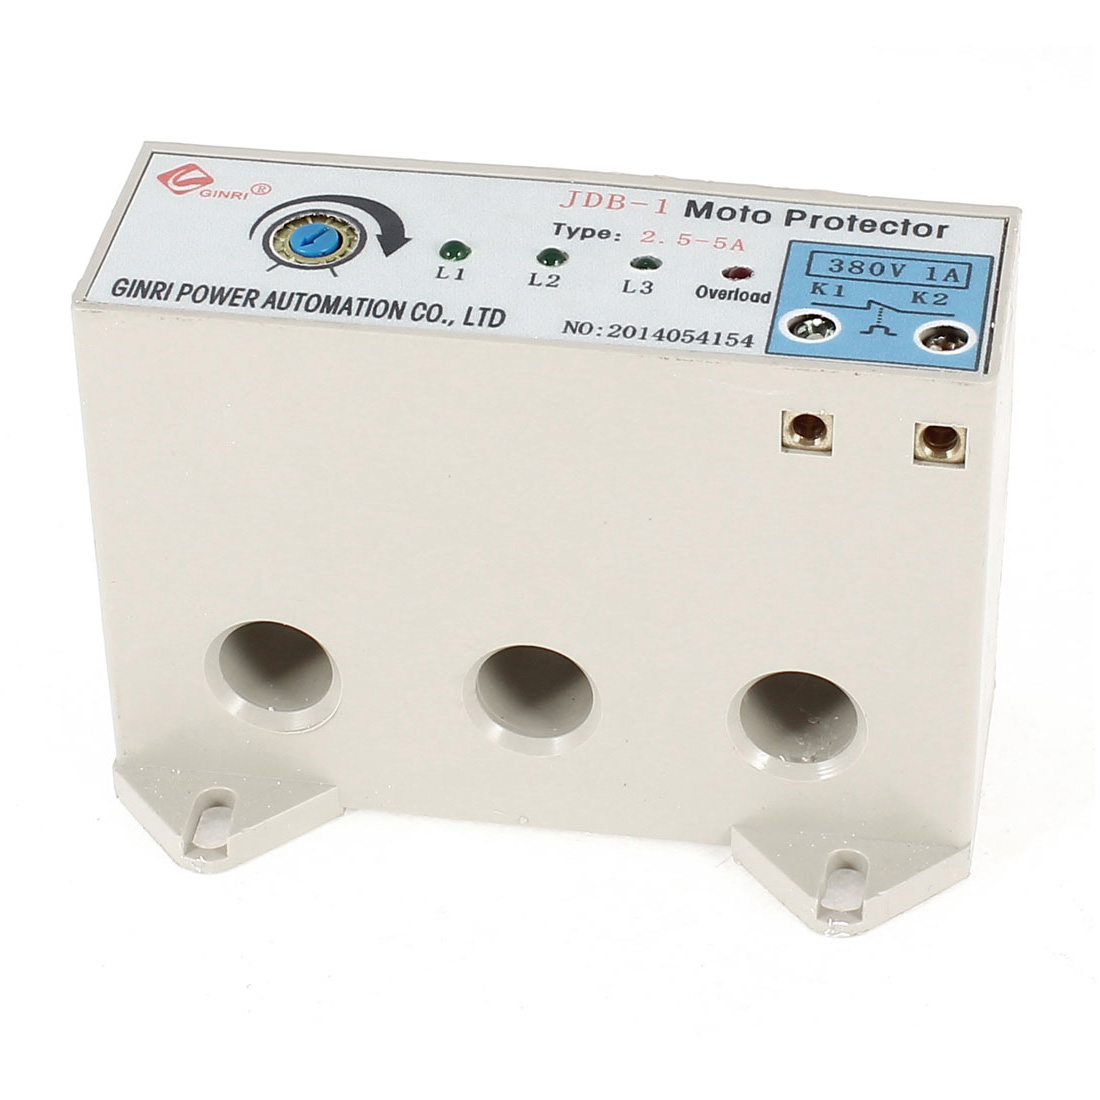 JDB-1/2.5-5A 3 Phase 2.5-5 Ampere Adjustable Current Breaker Motor Circuit Protector Non Power